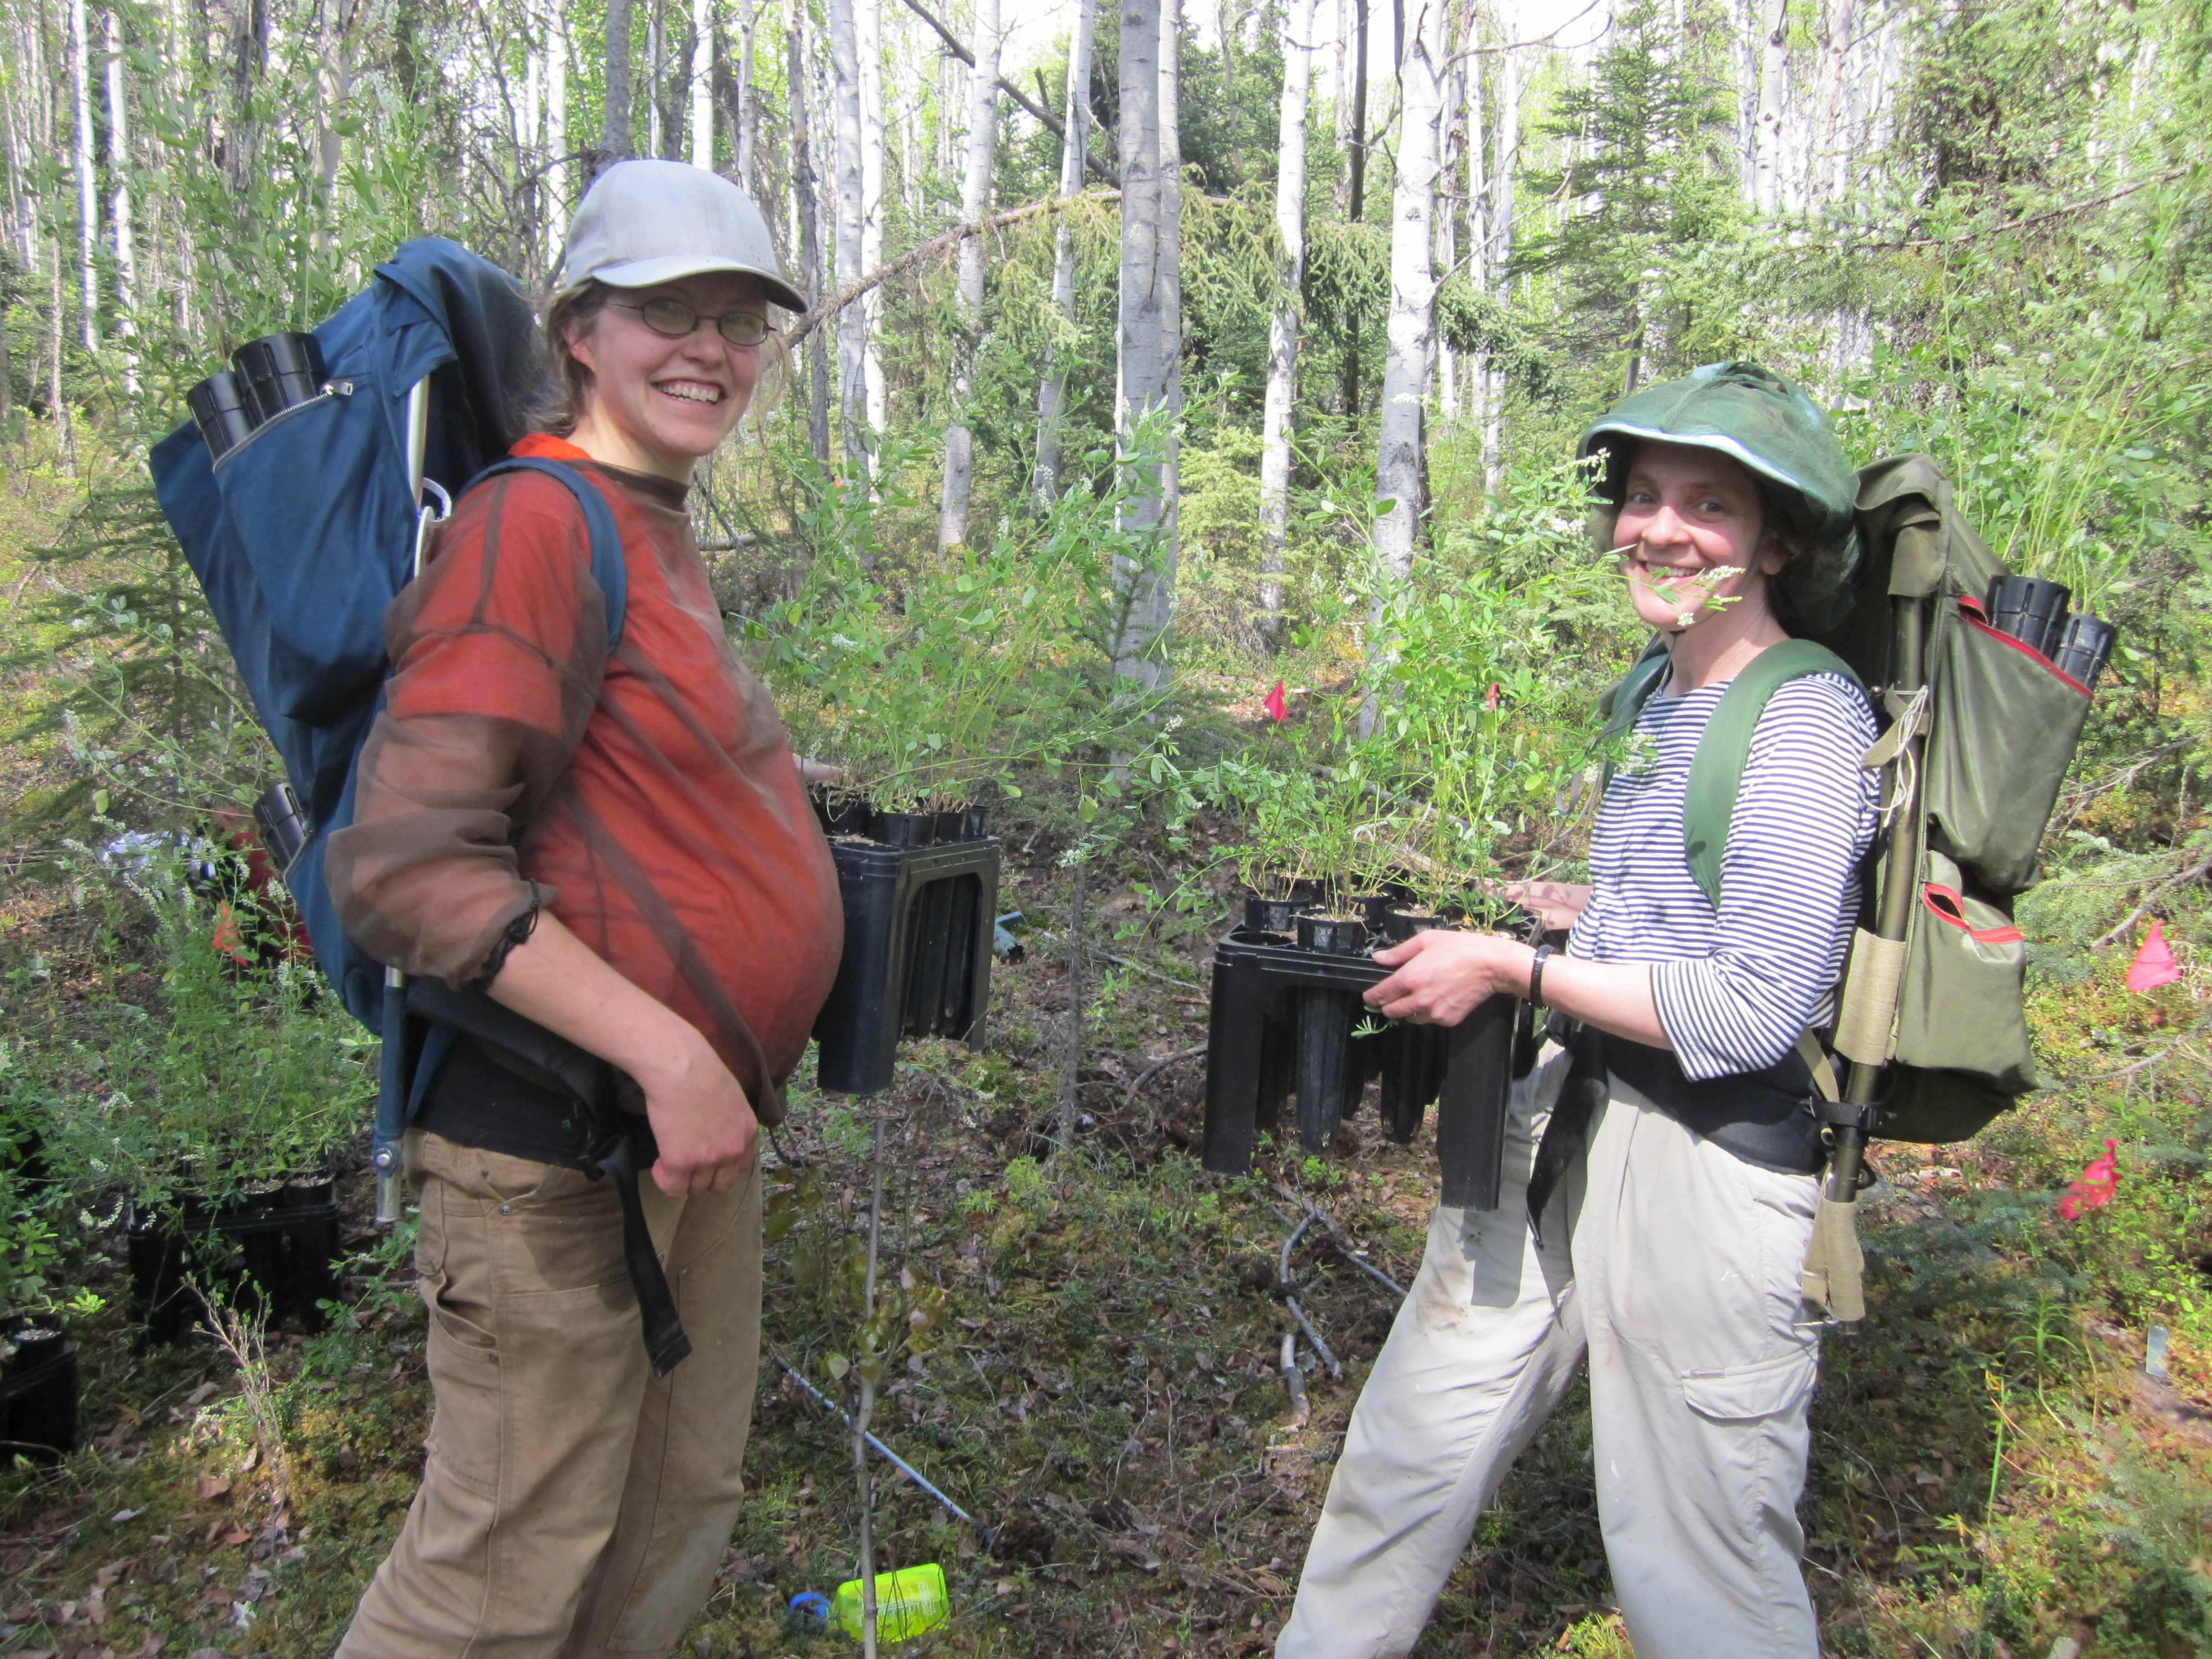 Dr. Christa Mulder and Dr. Katie Spellman removing non-native Melilotus albus plants.